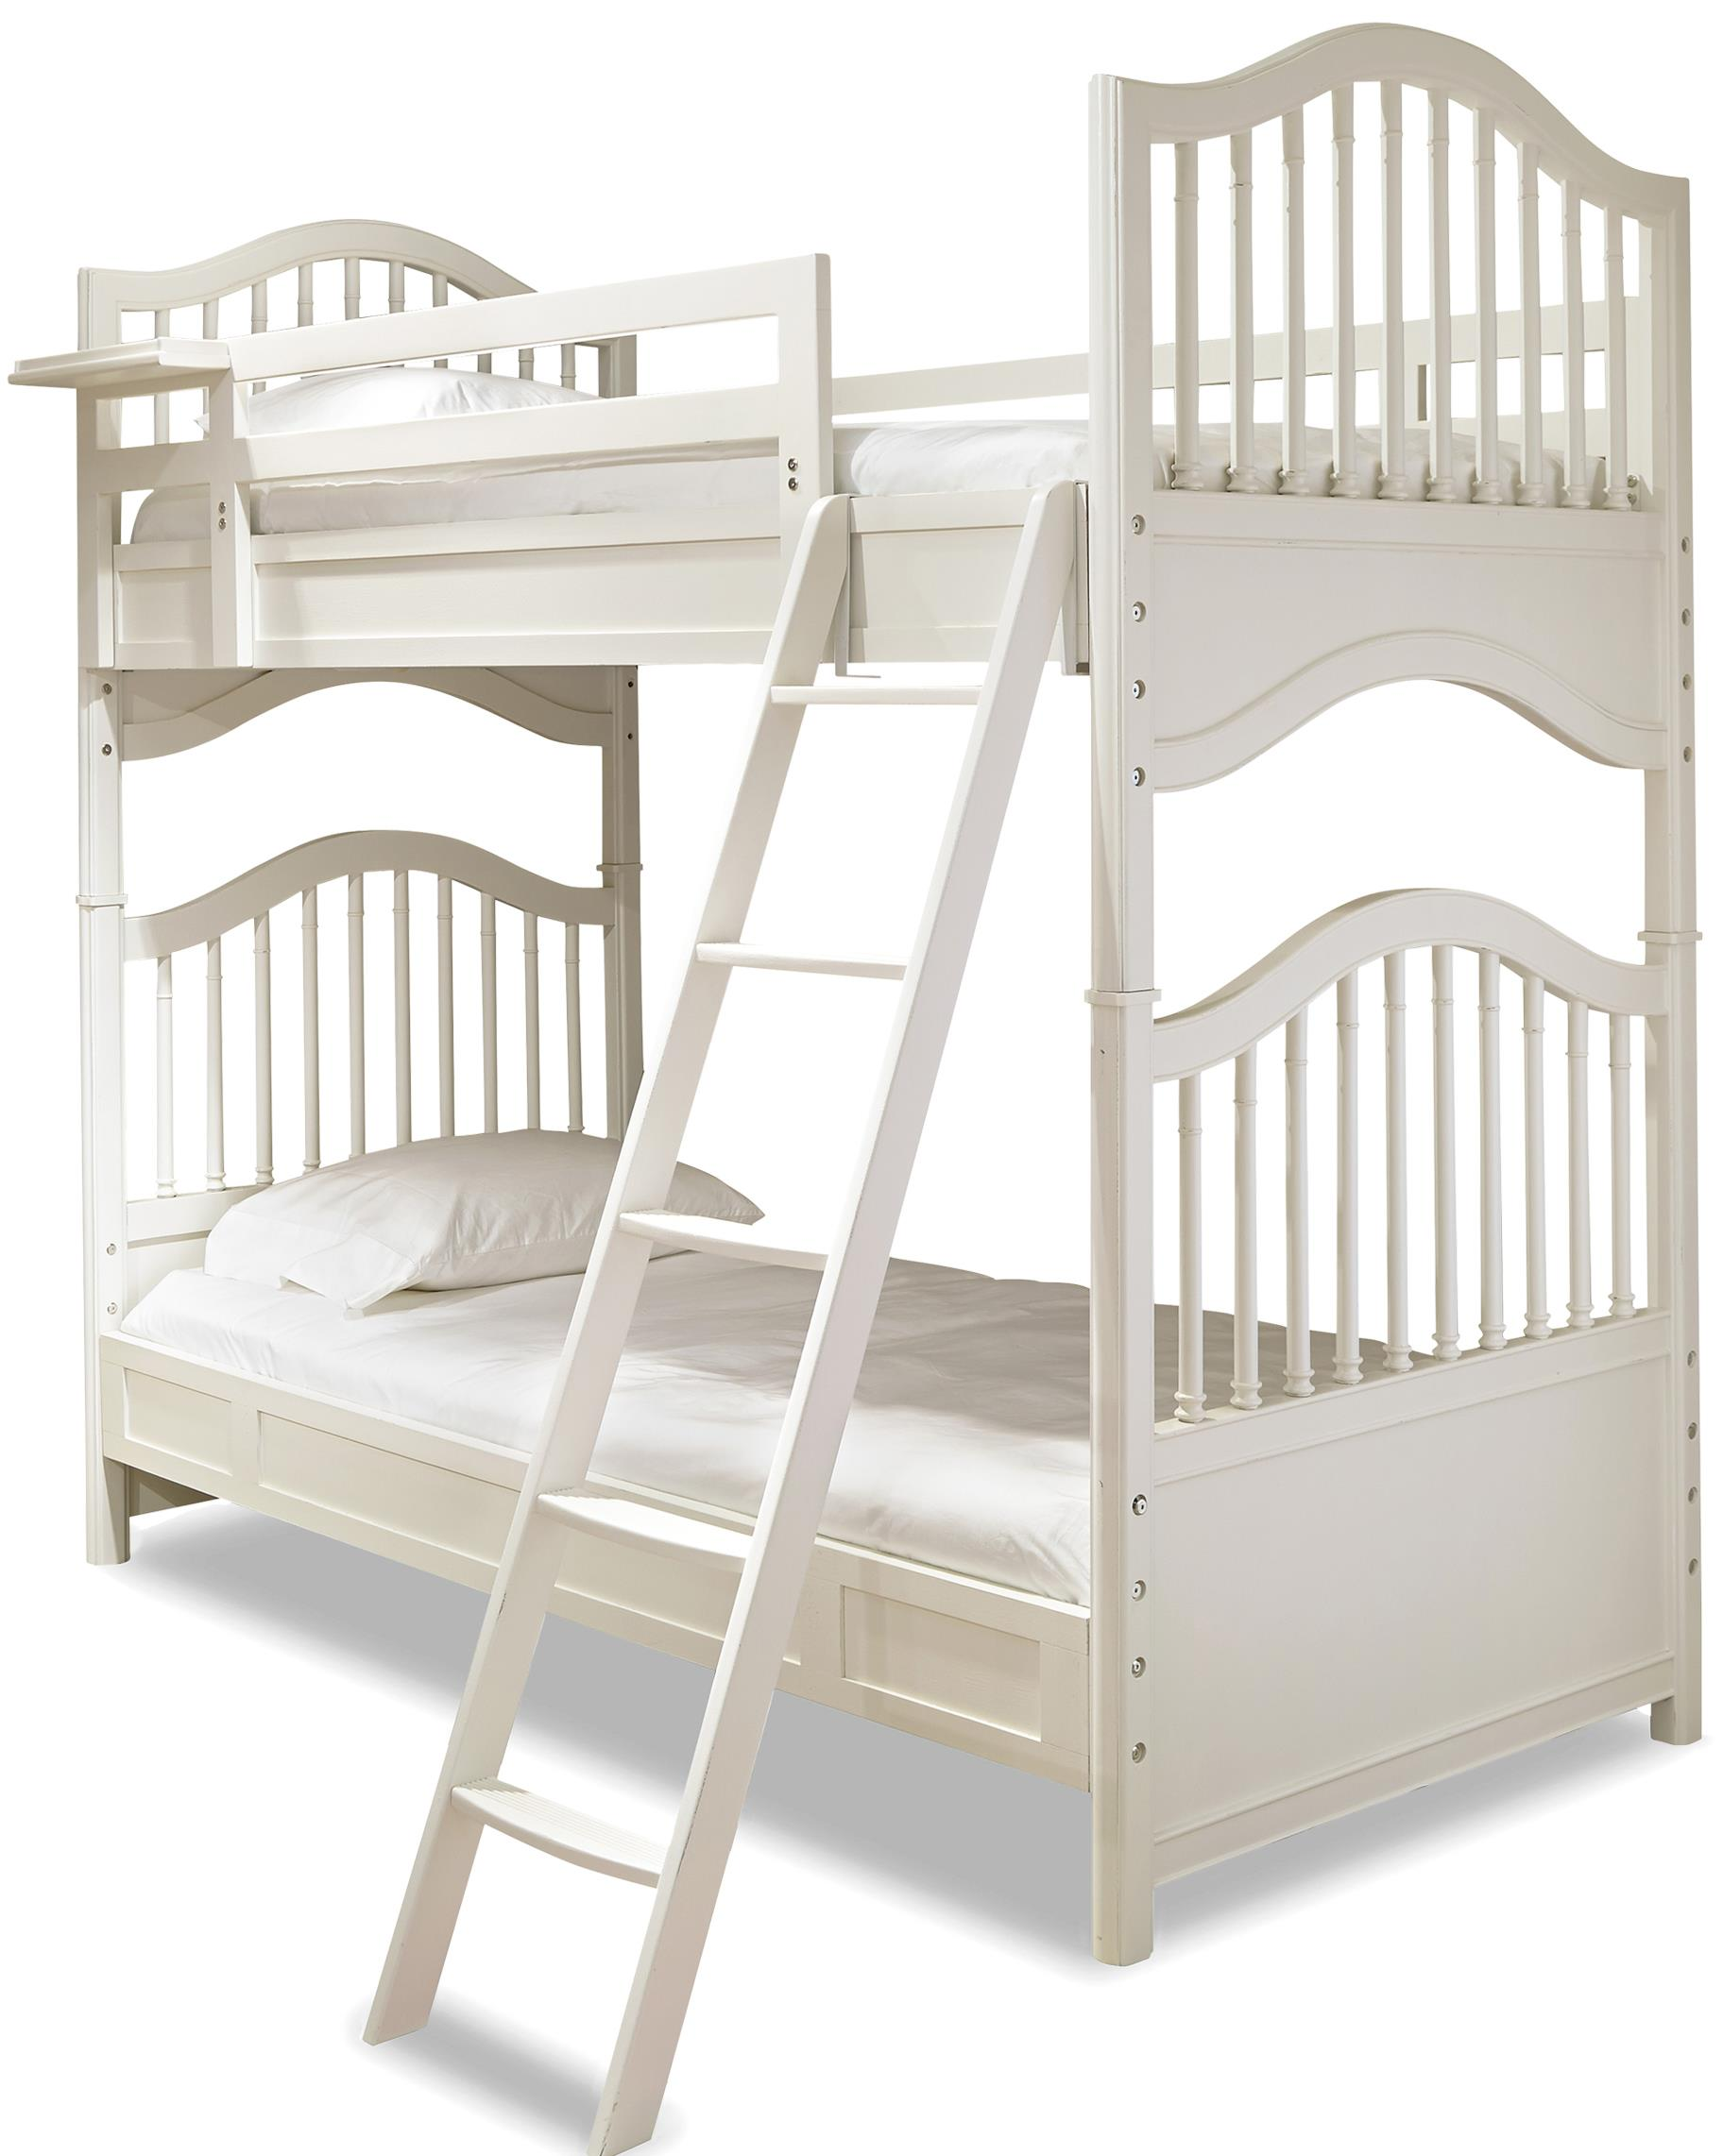 Smartstuff Genevieve Twin Bunk Bed - Item Number: 434A530